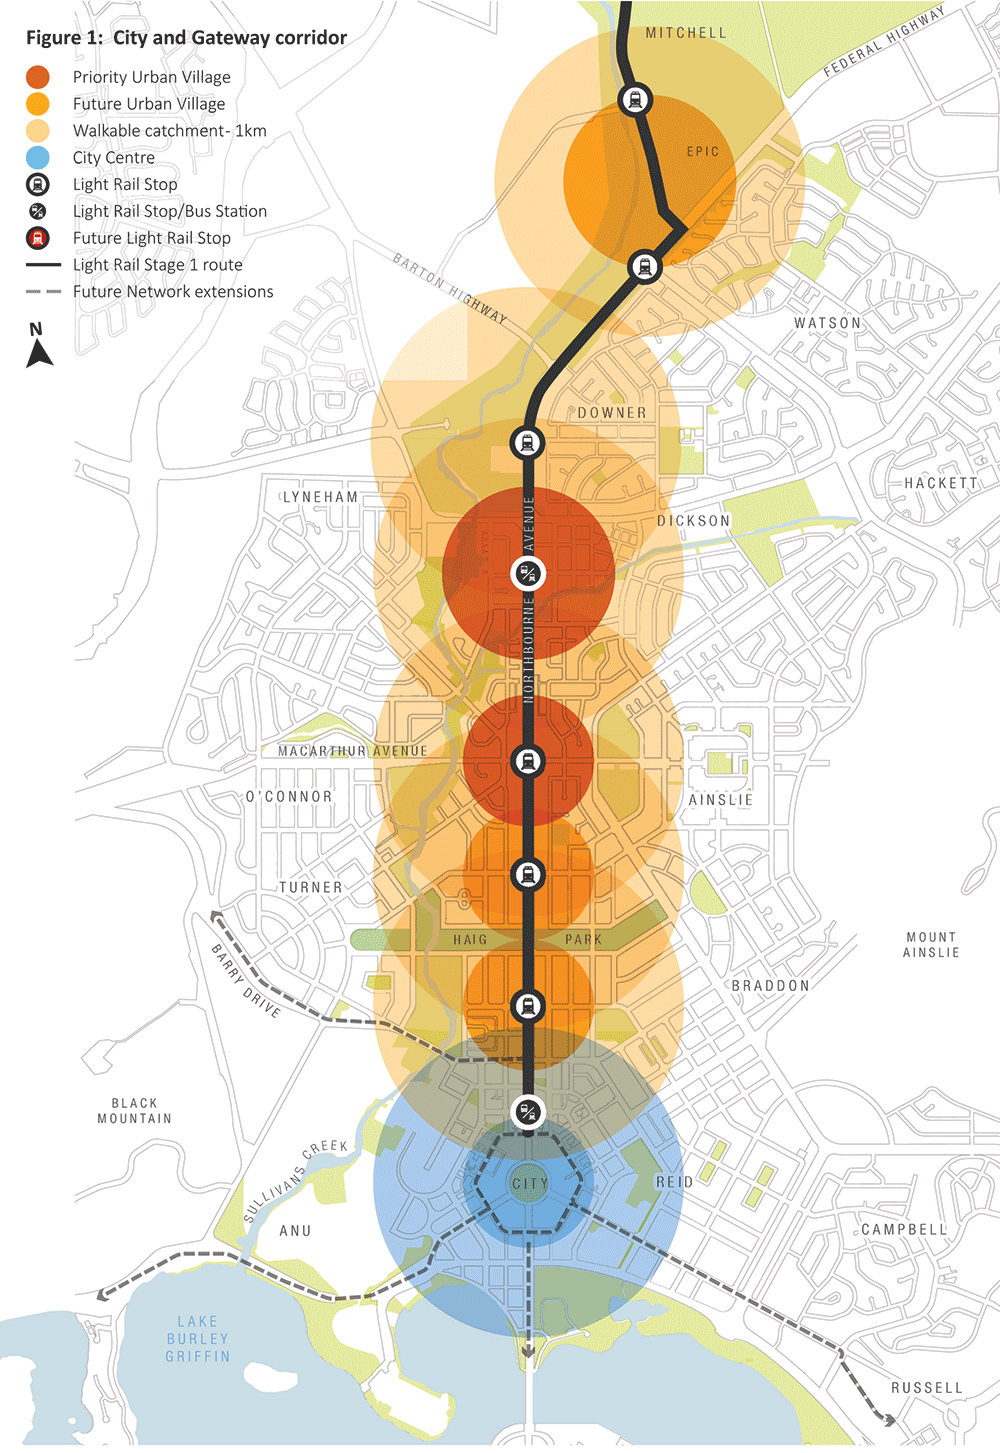 City and Gateway corridor map. It shows Priority Urban Villages, Future Urban Villages, Walkable catchments, Capital Metrol Light Rail Stops and Bus Stations, Future Light Rail Stops, and the mains and possible light rail routes.